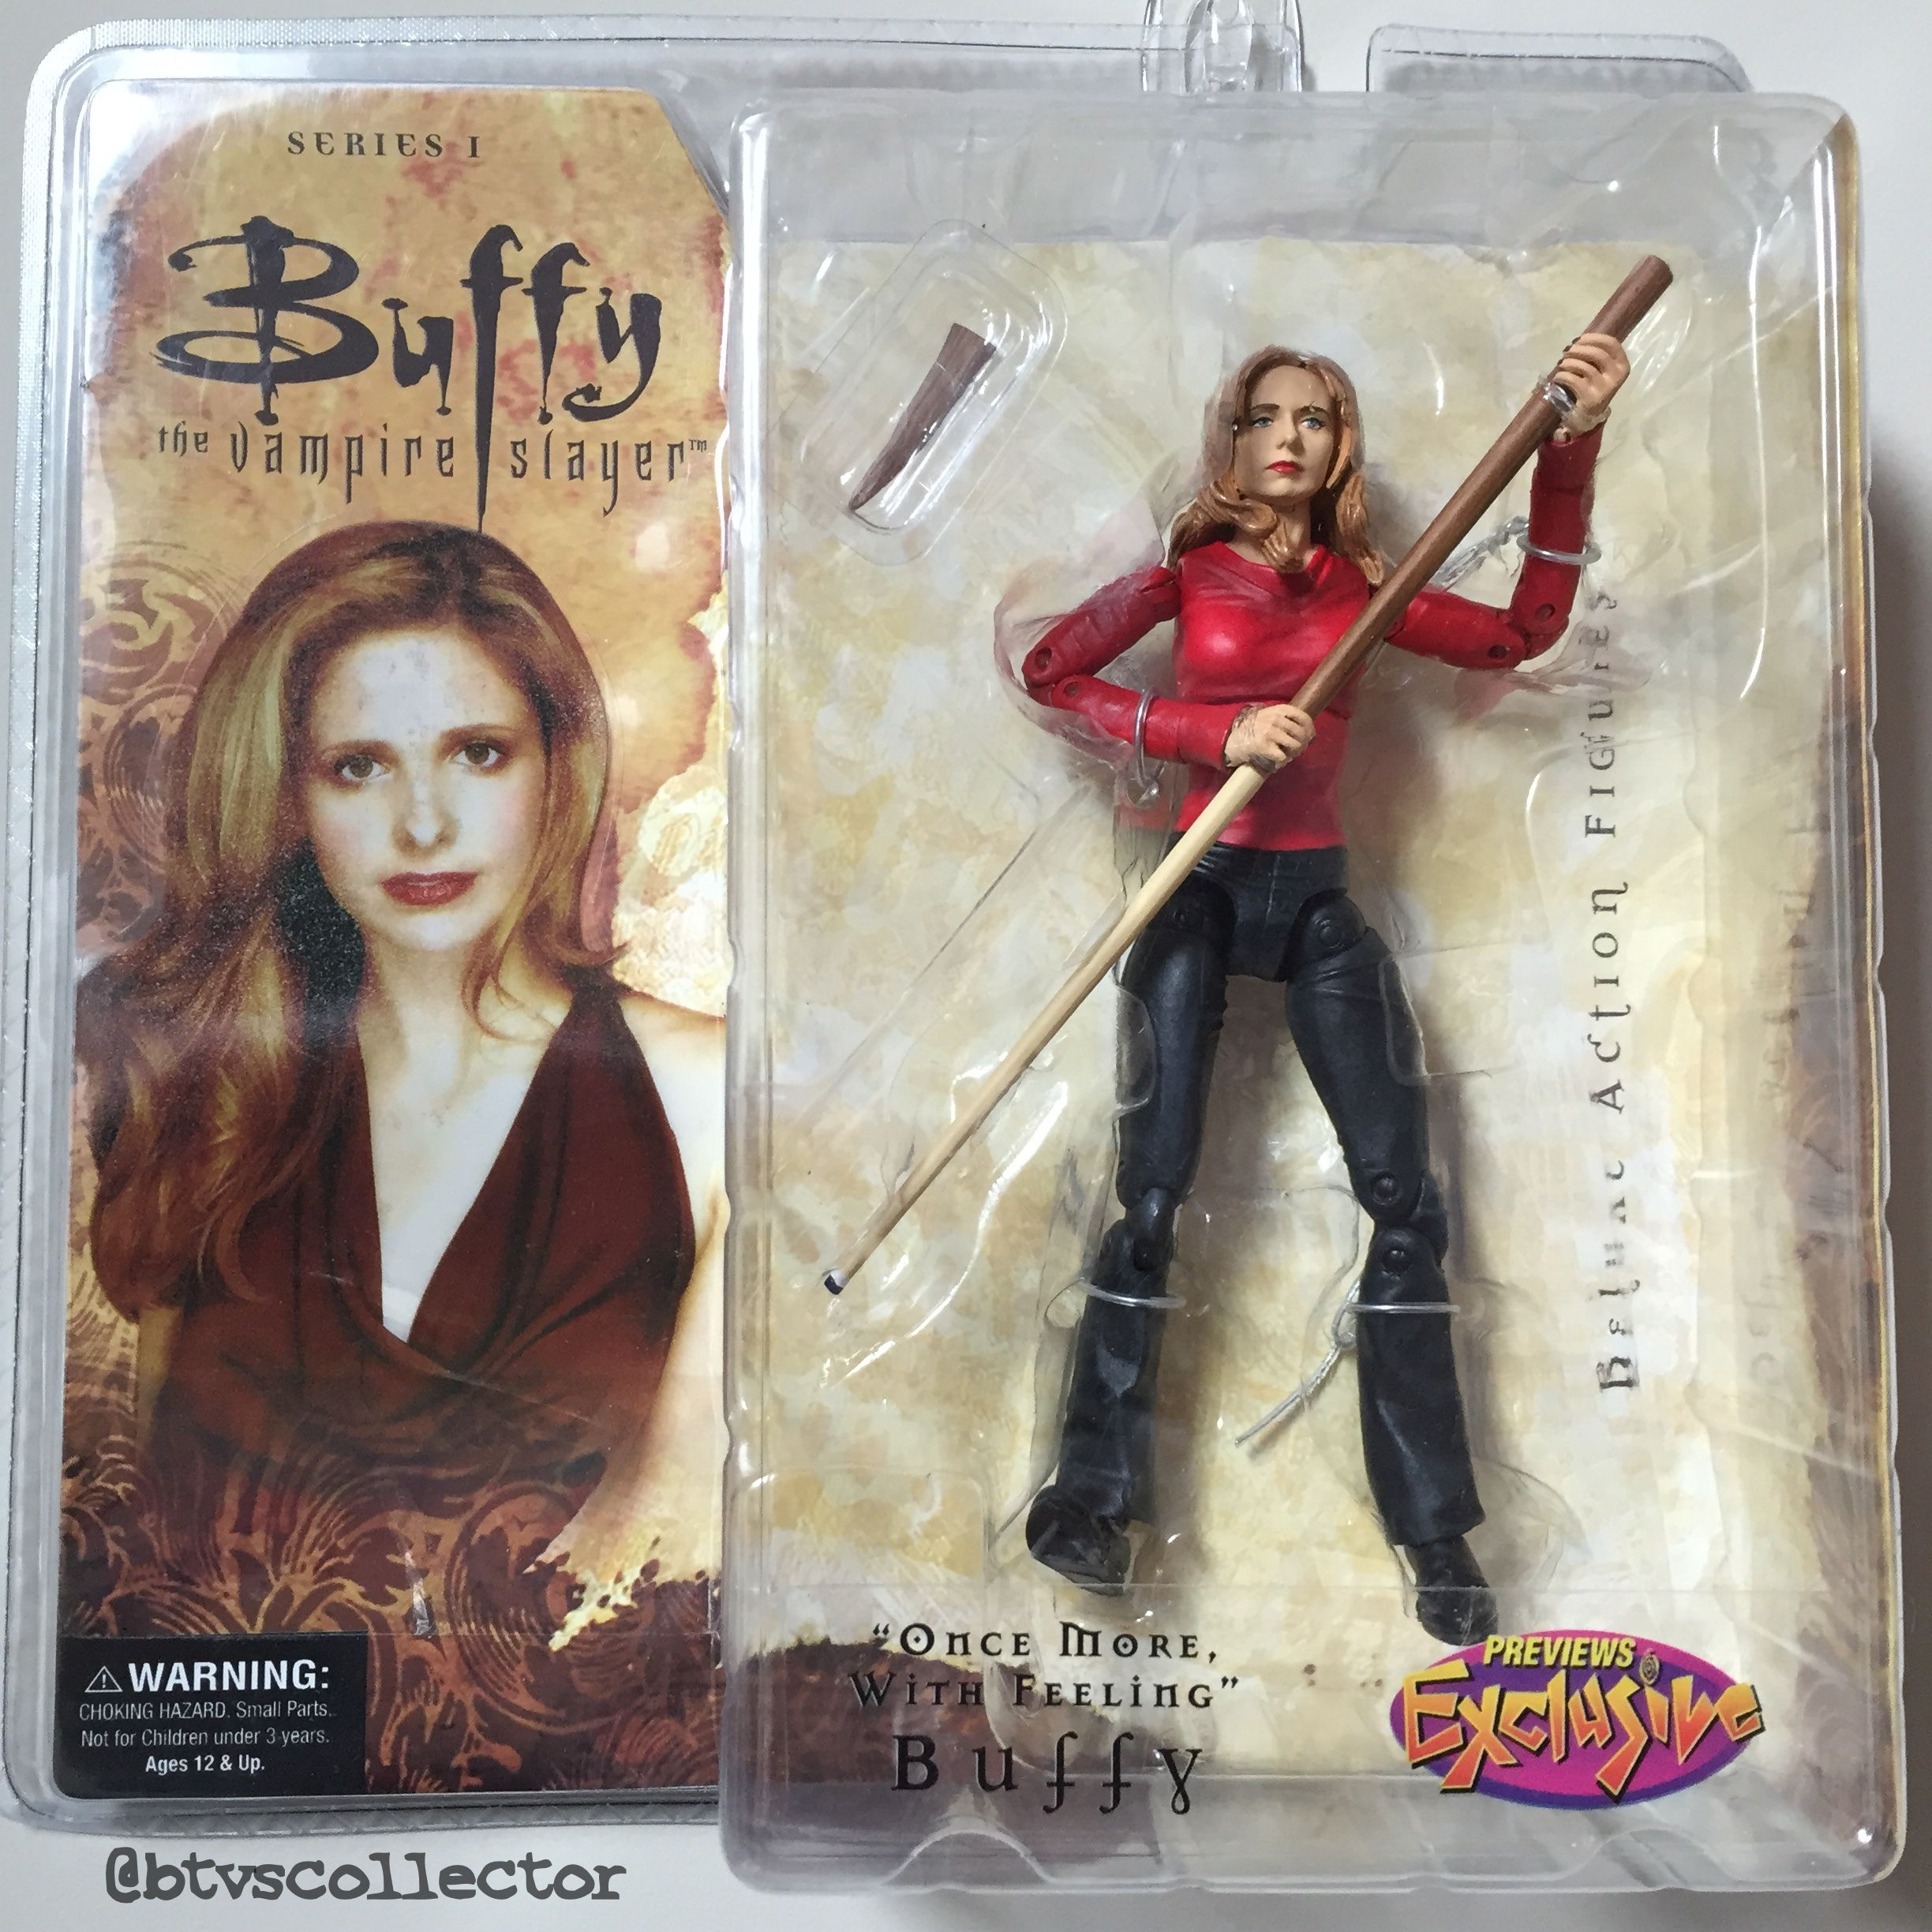 "Diamond Select - Buffy the Vampire Slayer Deluxe Figure - Series 1 - Previews Exclusive - ""Once More, With Feeling"" Buffy. #btvscollector #buffy #btvs #buffythevampireslayer"